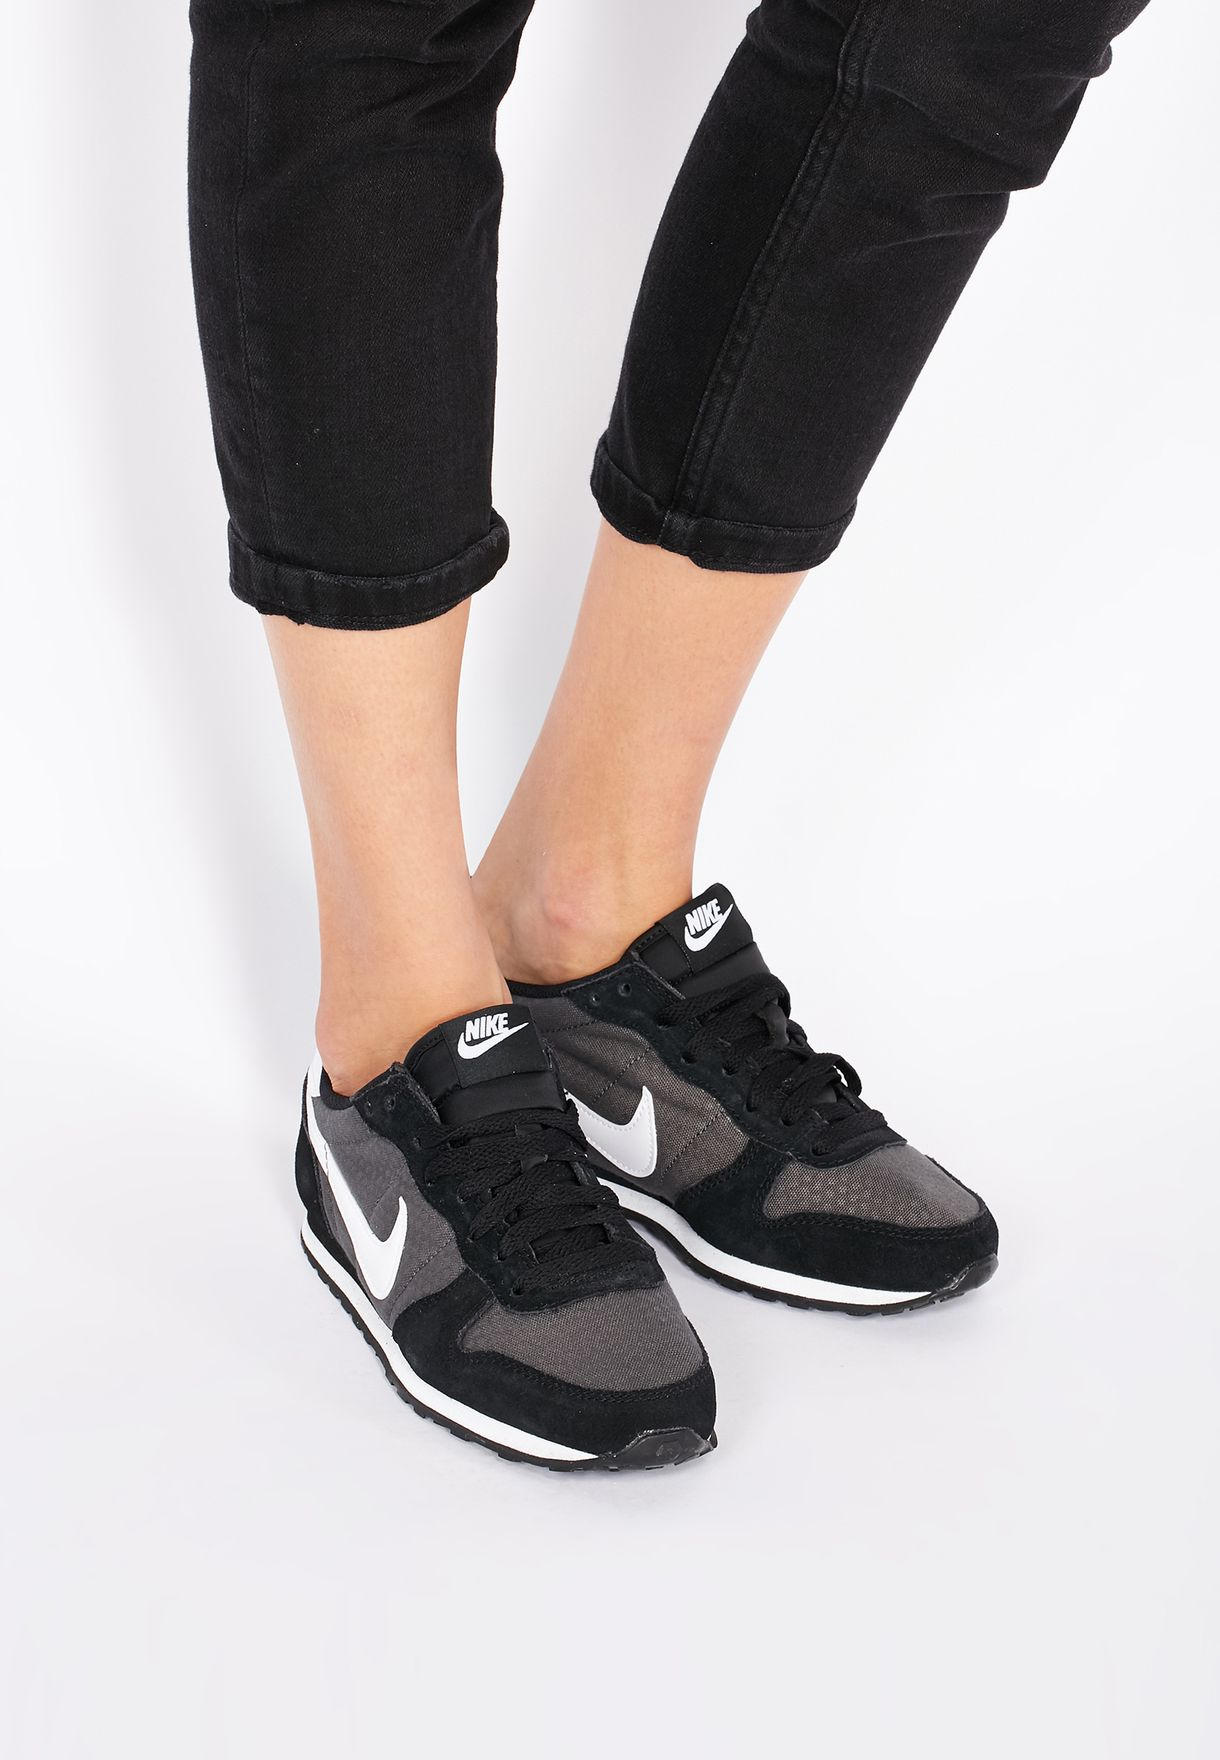 mareado Alacena Transistor  Buy Nike black Genicco for Women in MENA, Worldwide | 644451-012